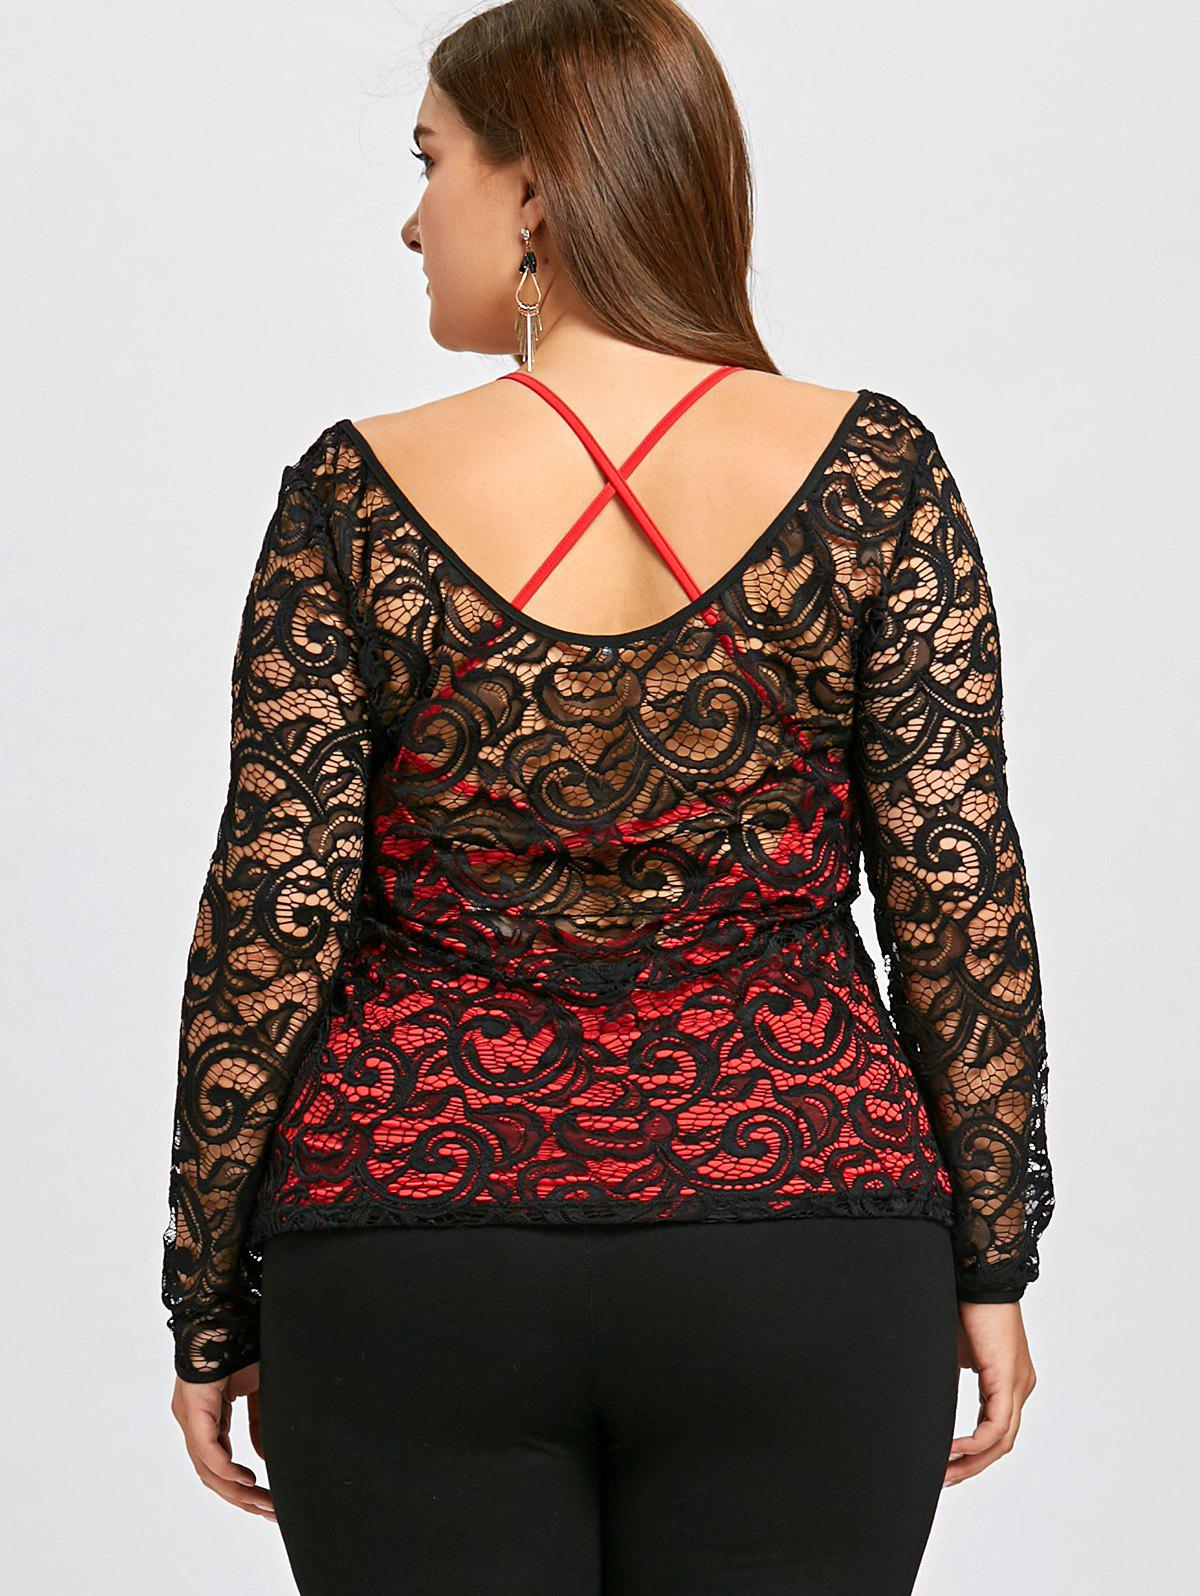 Plus Size Lace Blouse with Criss Cross Tank Top - BLACK 4XL